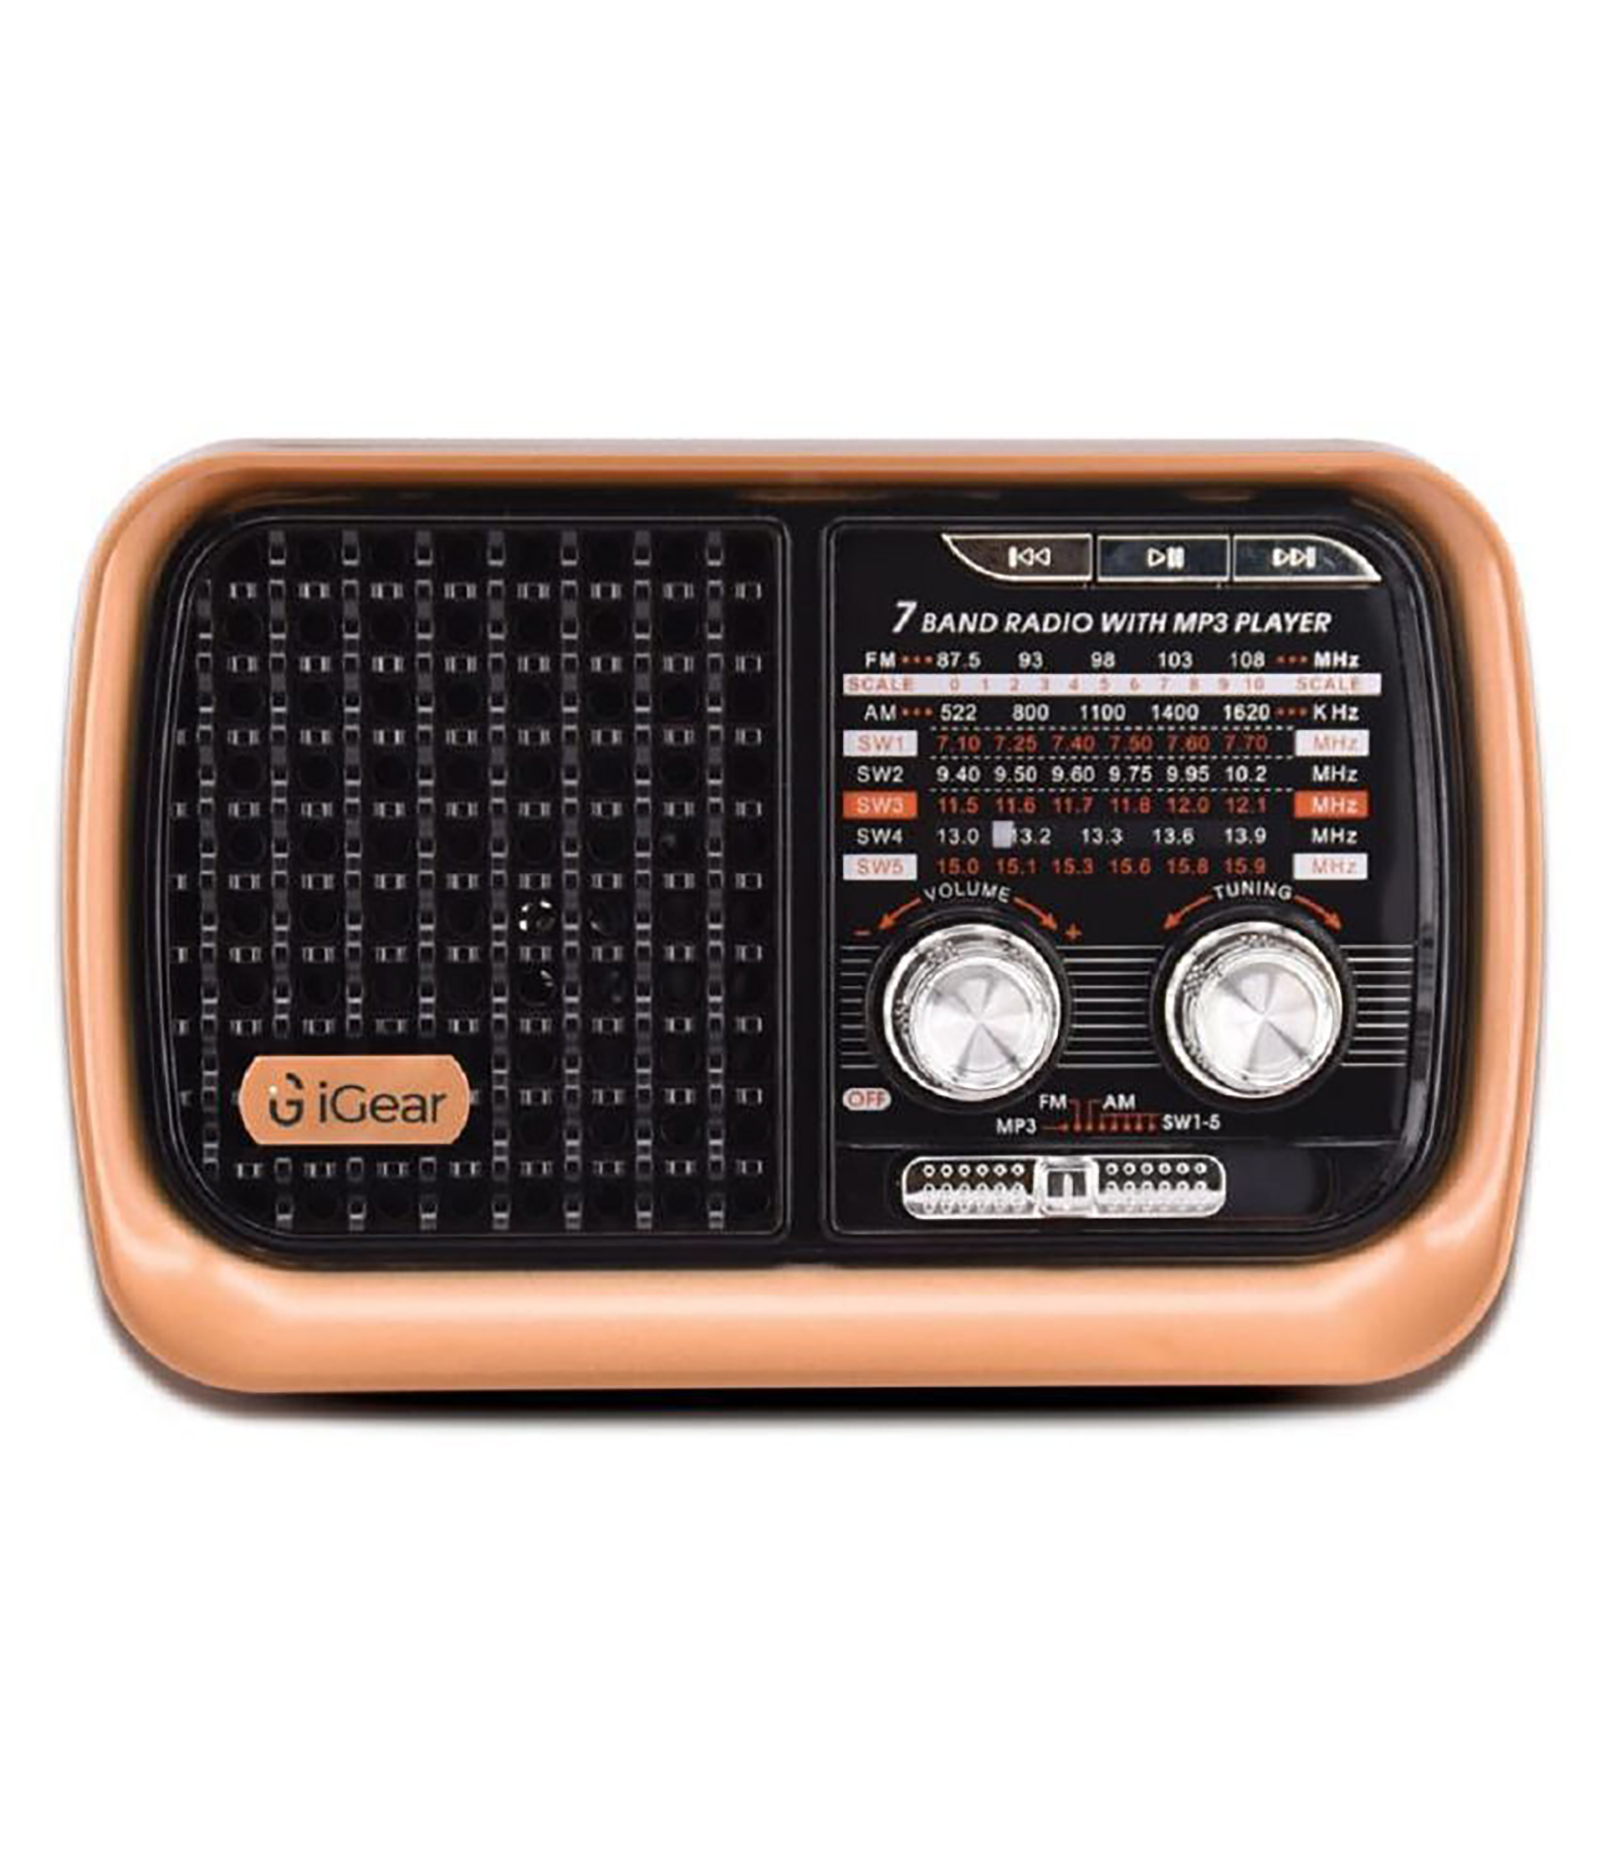 iGear Vintage Vibes 8 Watts MP3 Player (Rechargeable Battery, iG-1112, Black and Copper)